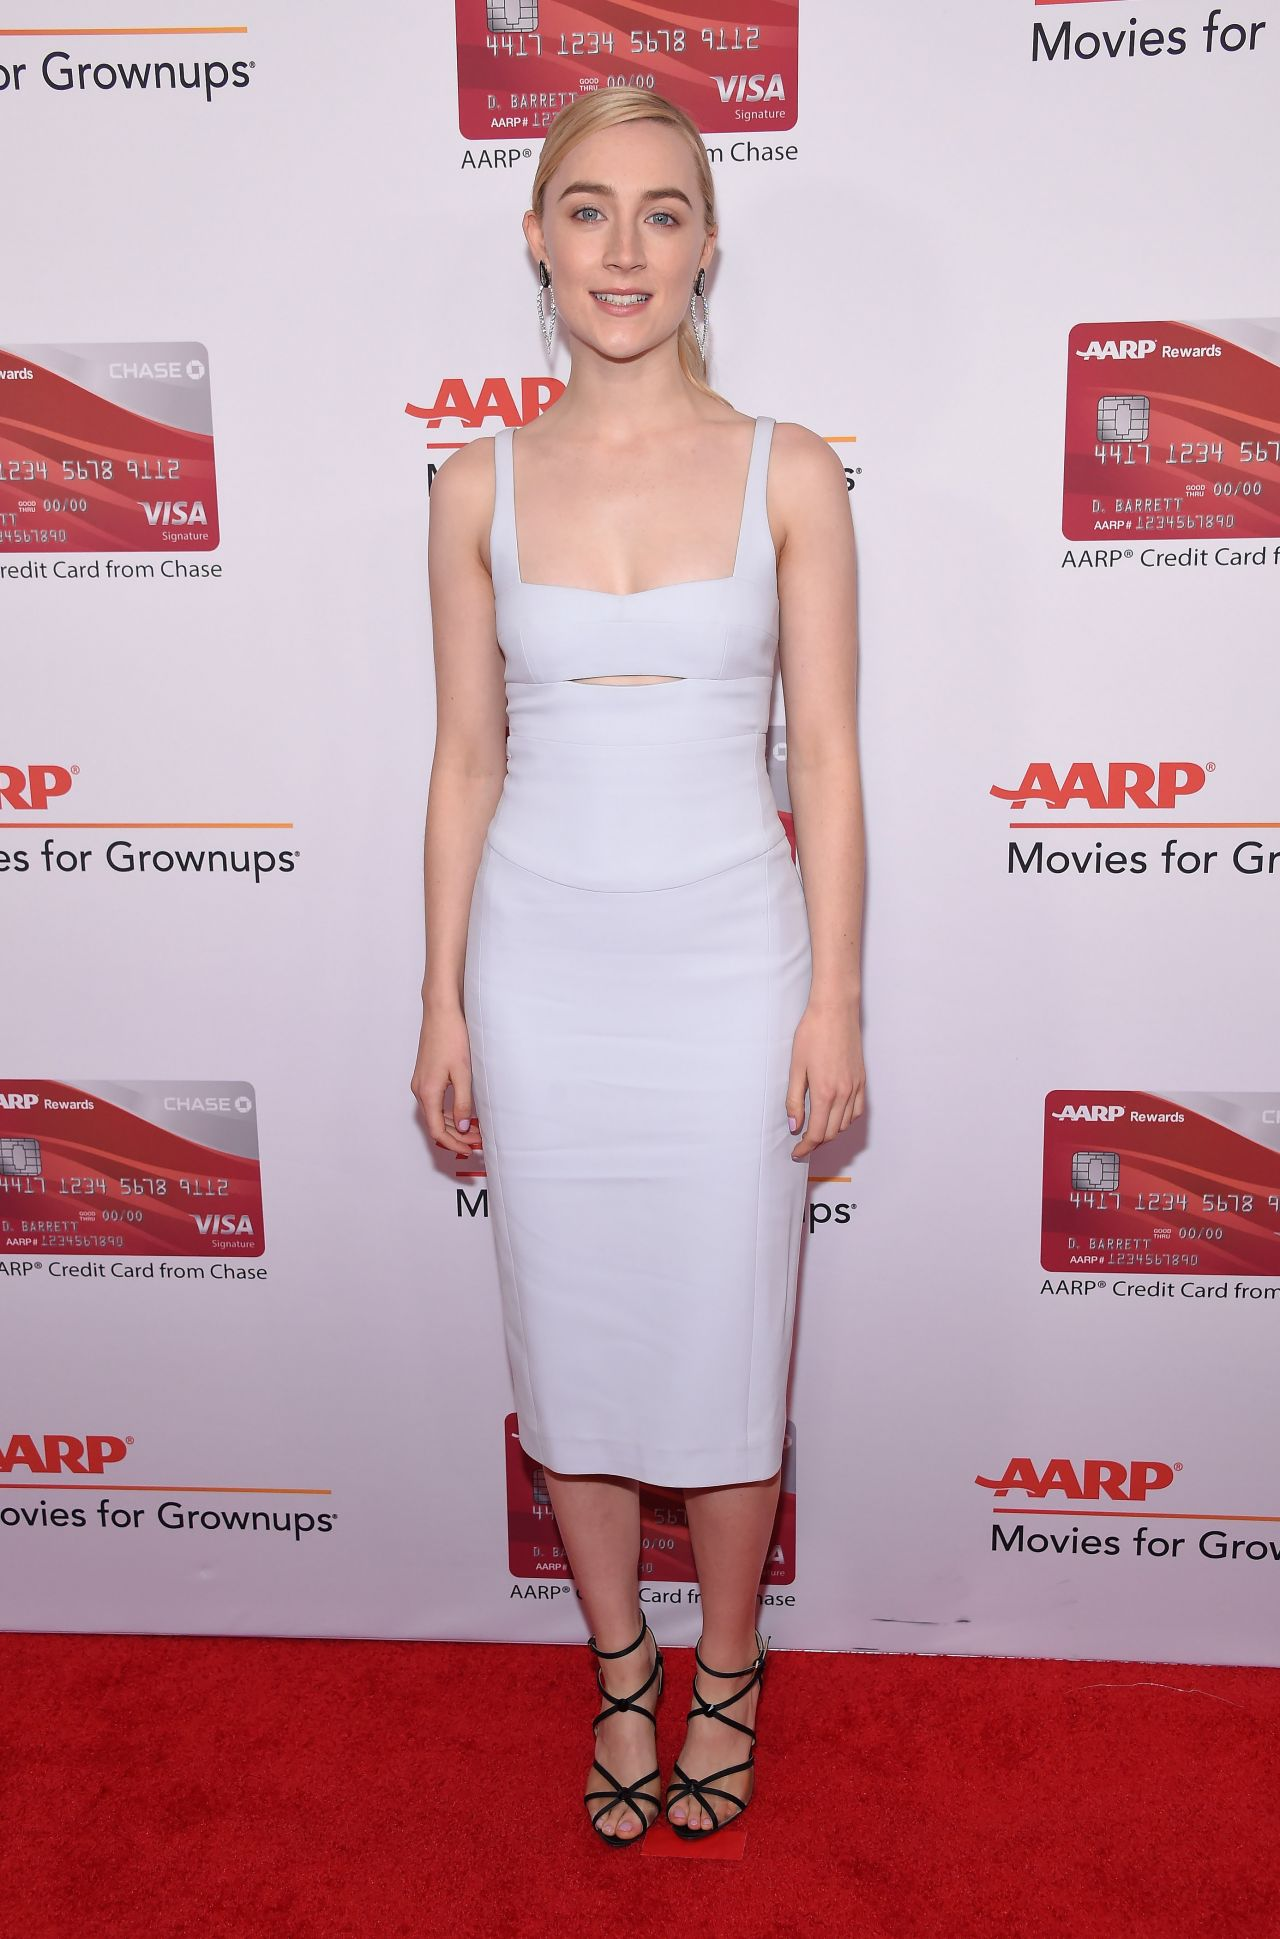 http://celebmafia.com/wp-content/uploads/2018/02/saoirse-ronan-aarp-the-magazine-s-movies-for-grownups-awards-in-los-angeles-1.jpg